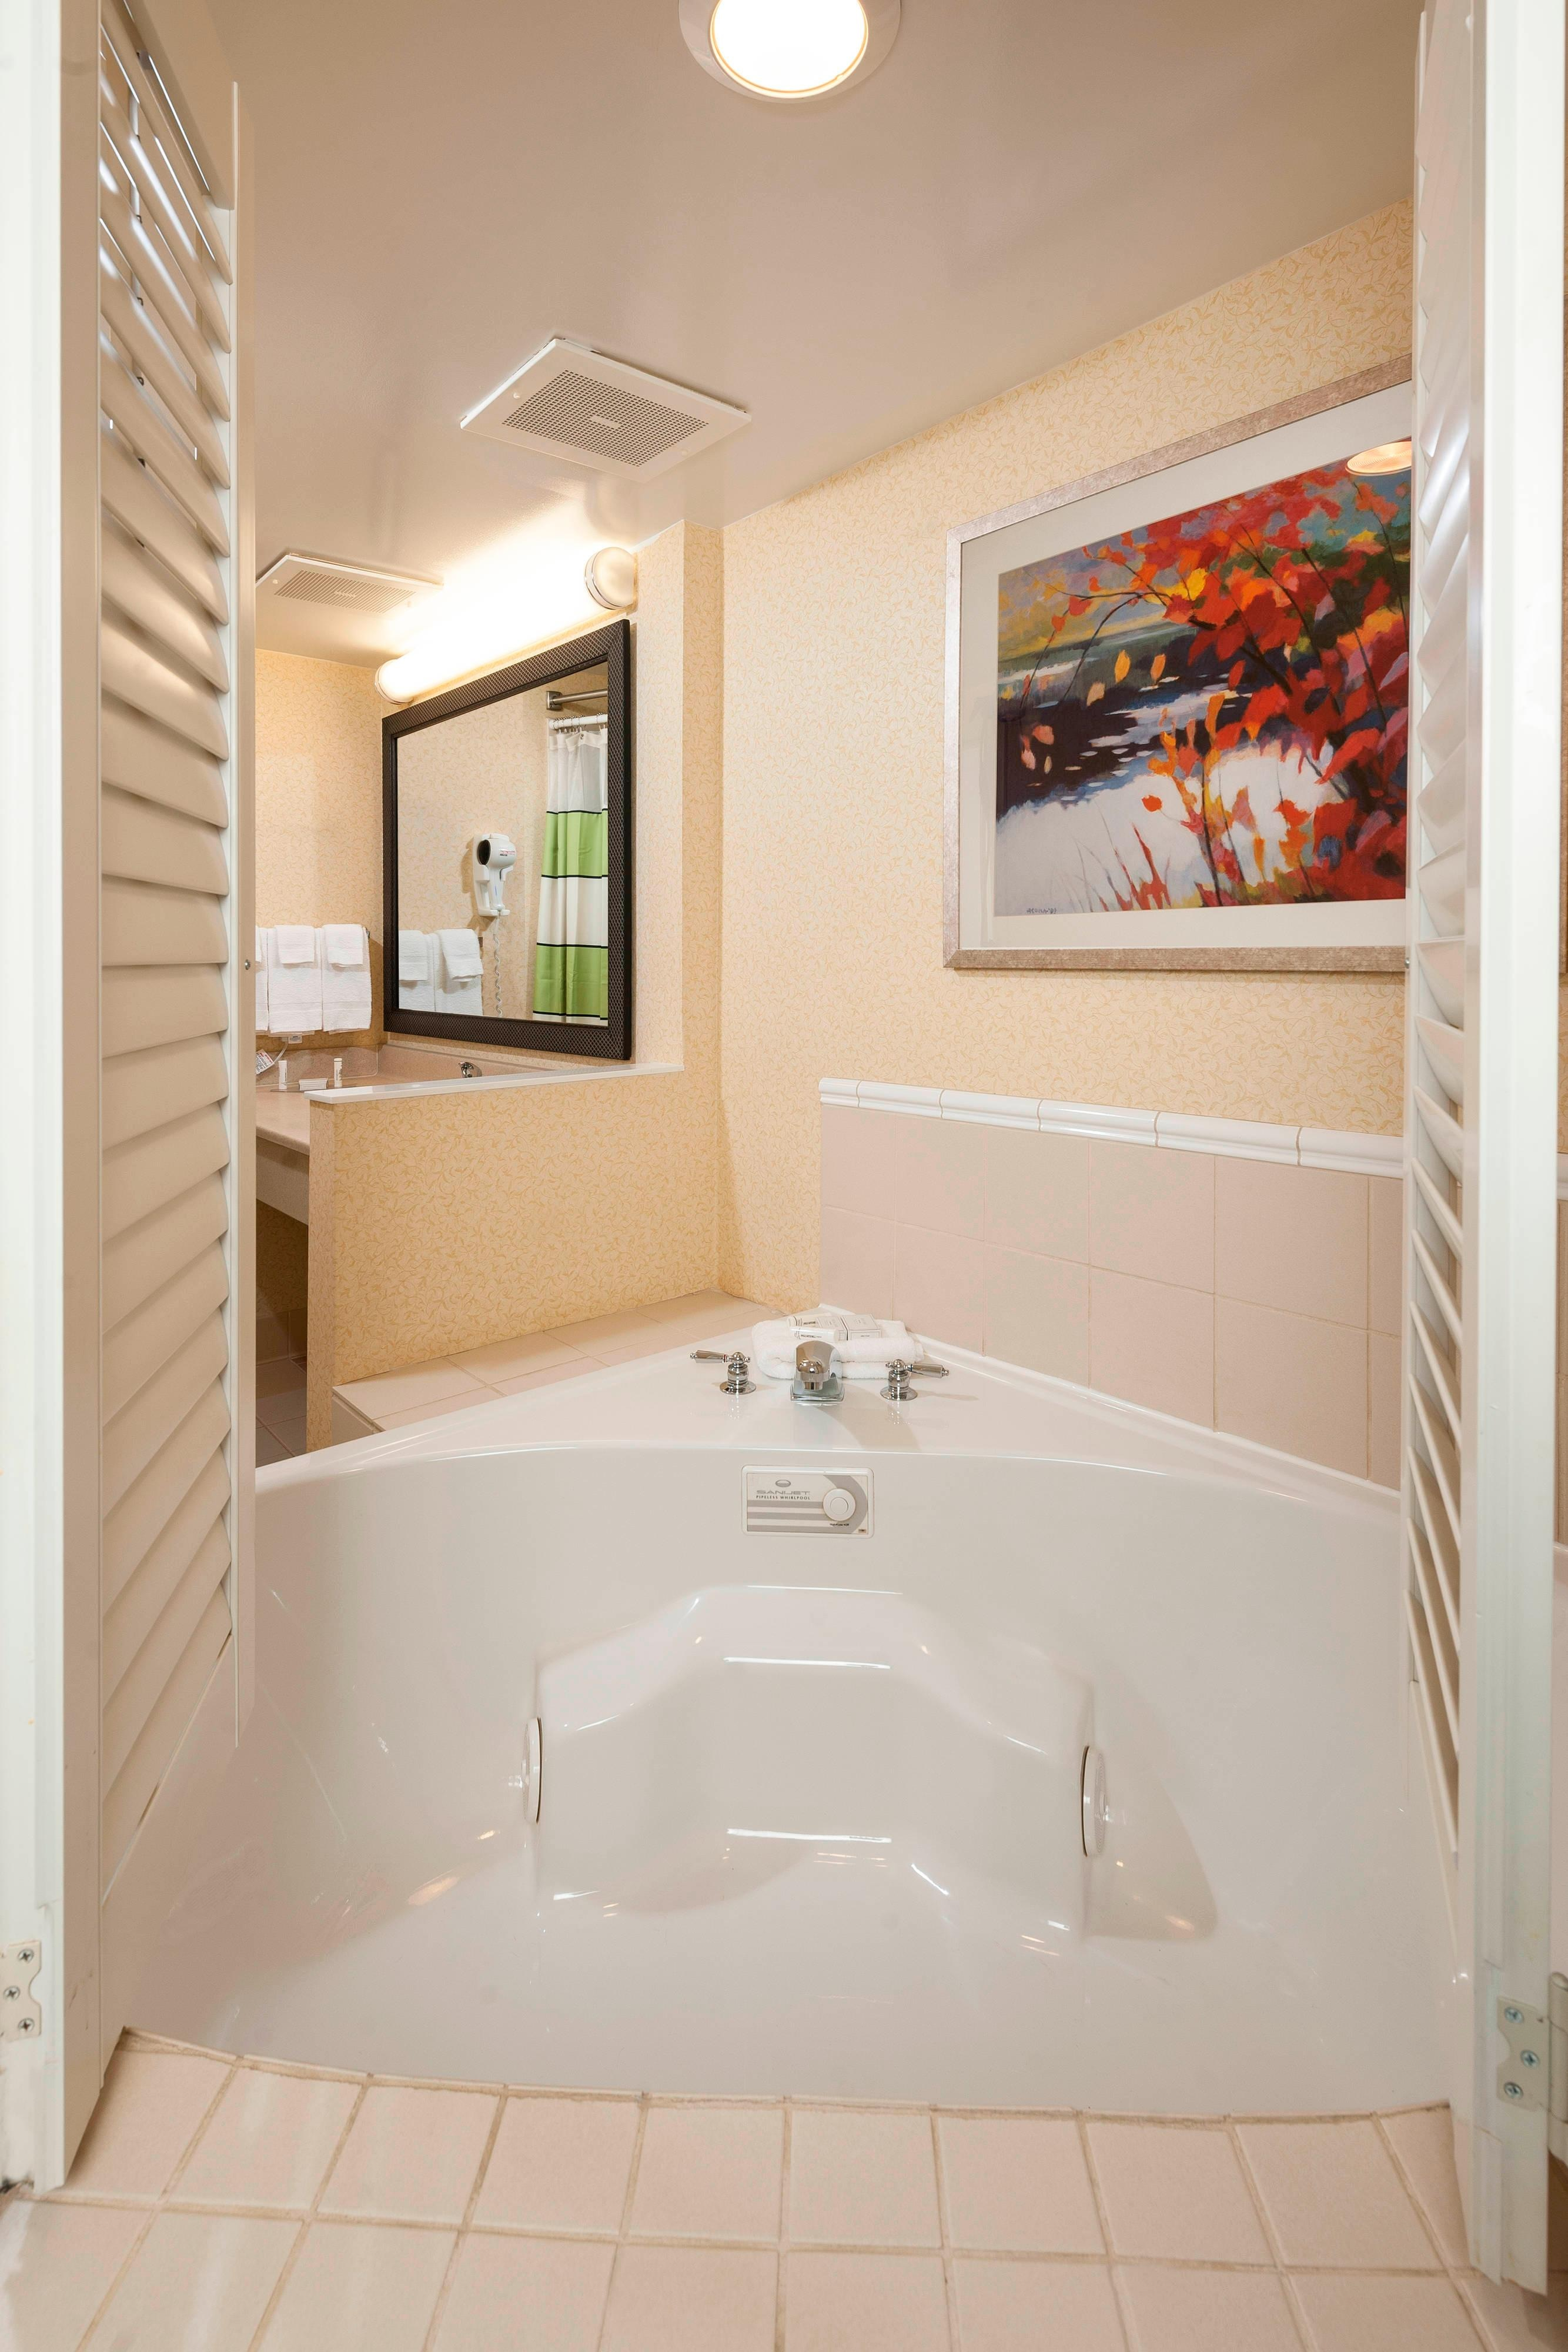 Spa King Guest Room Whirlpool